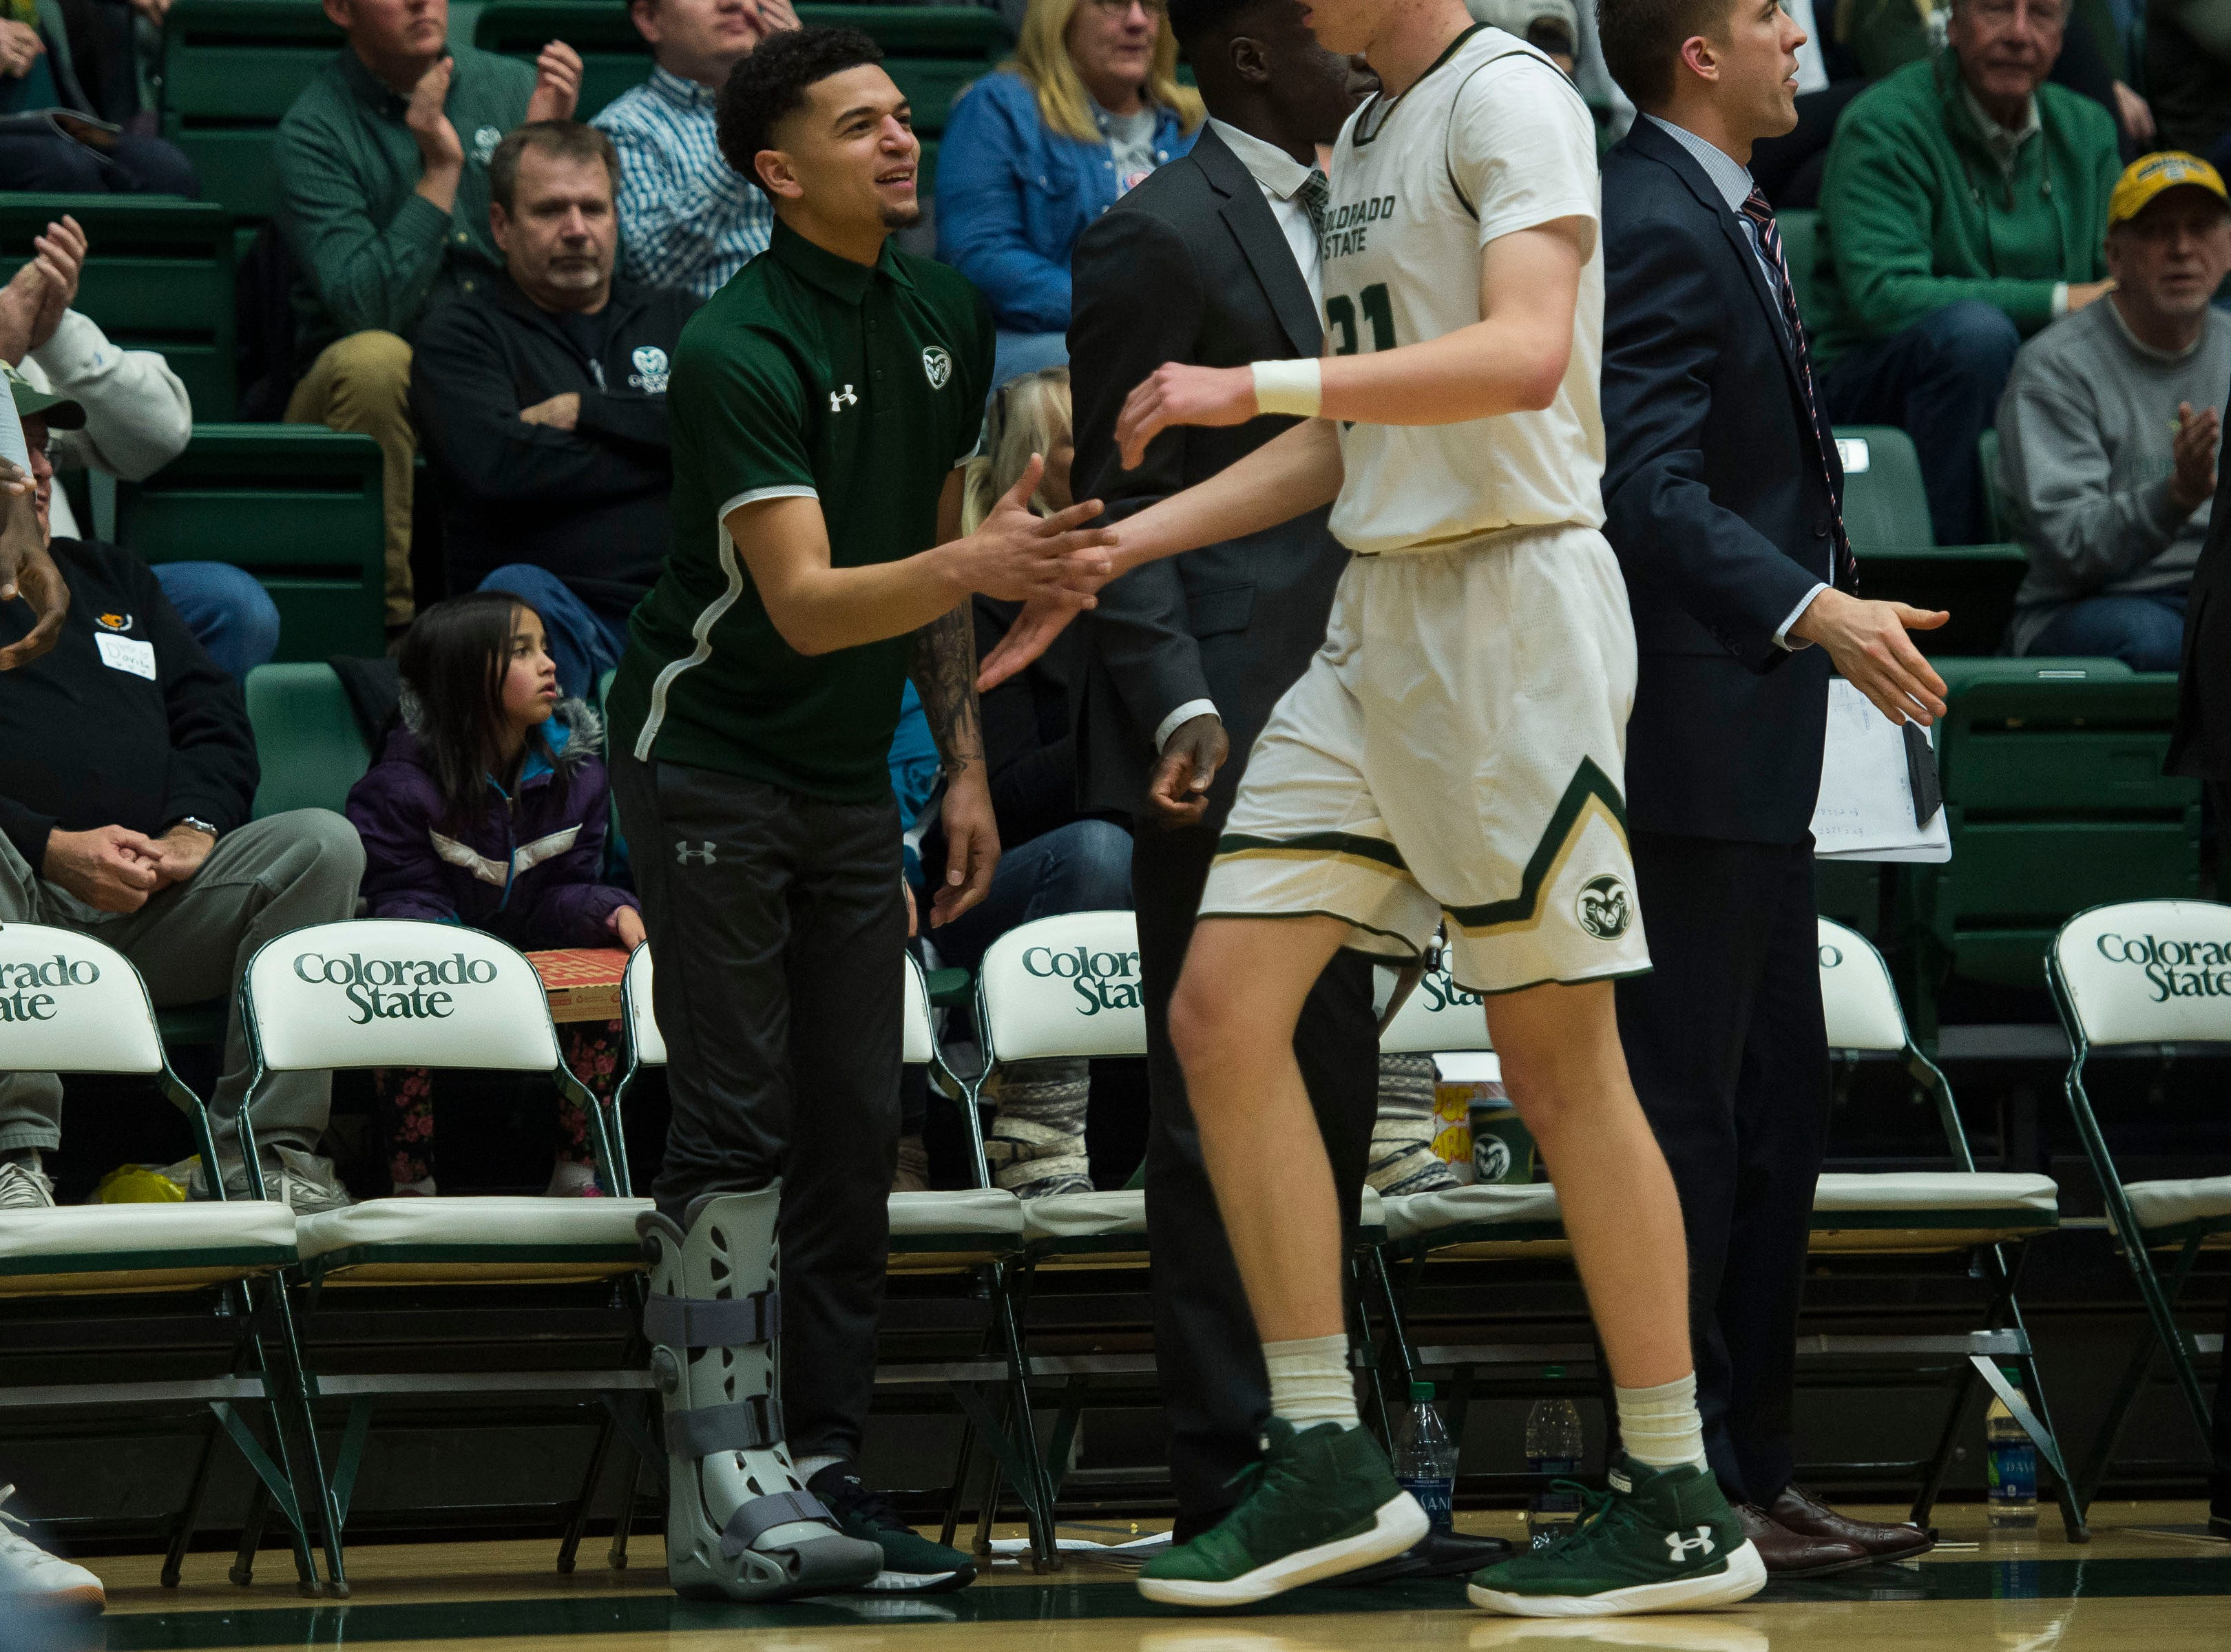 Colorado State University junior guard Anthony Masinton-Bonner (15) greets freshman forward Adam Thistlewood (31) while wearing a boot on the bench during a game against  Air Force Academy on Tuesday, Jan. 8, 2019, at Moby Arena in Fort Collins, Colo.